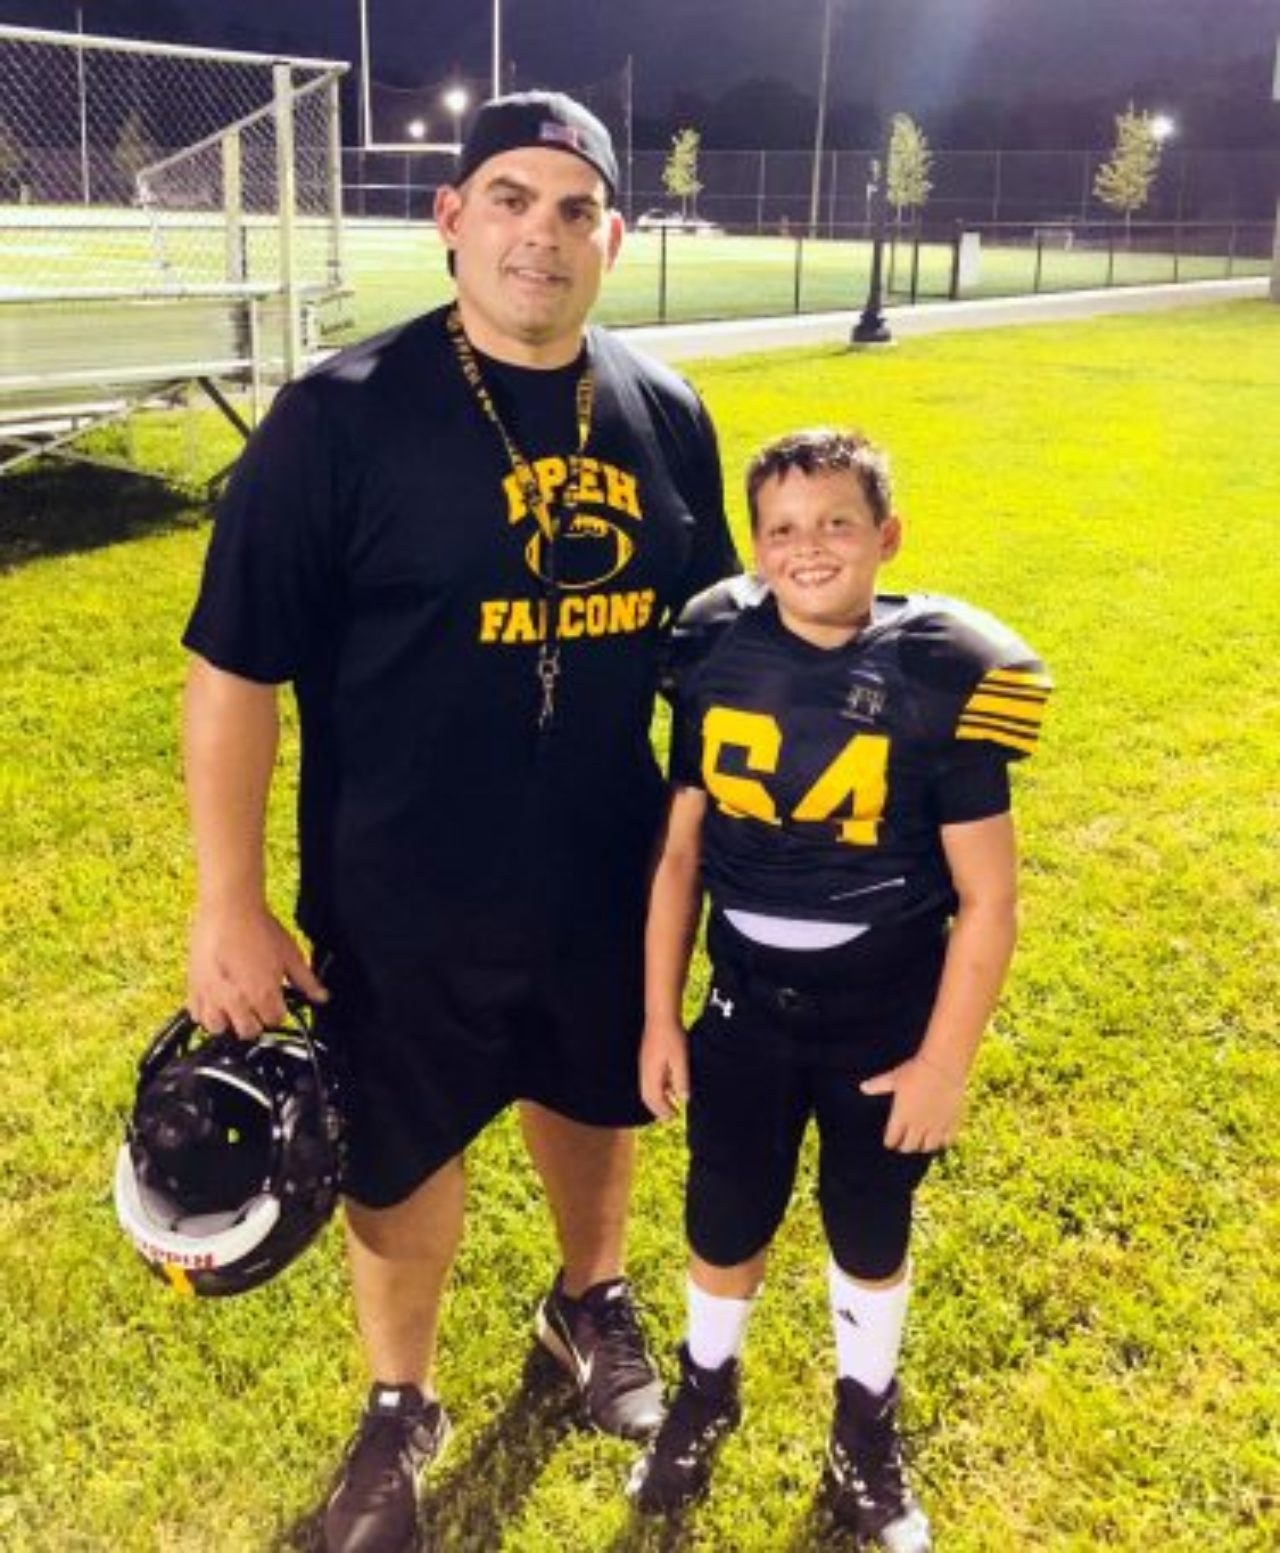 John Miscia with his son Michael.